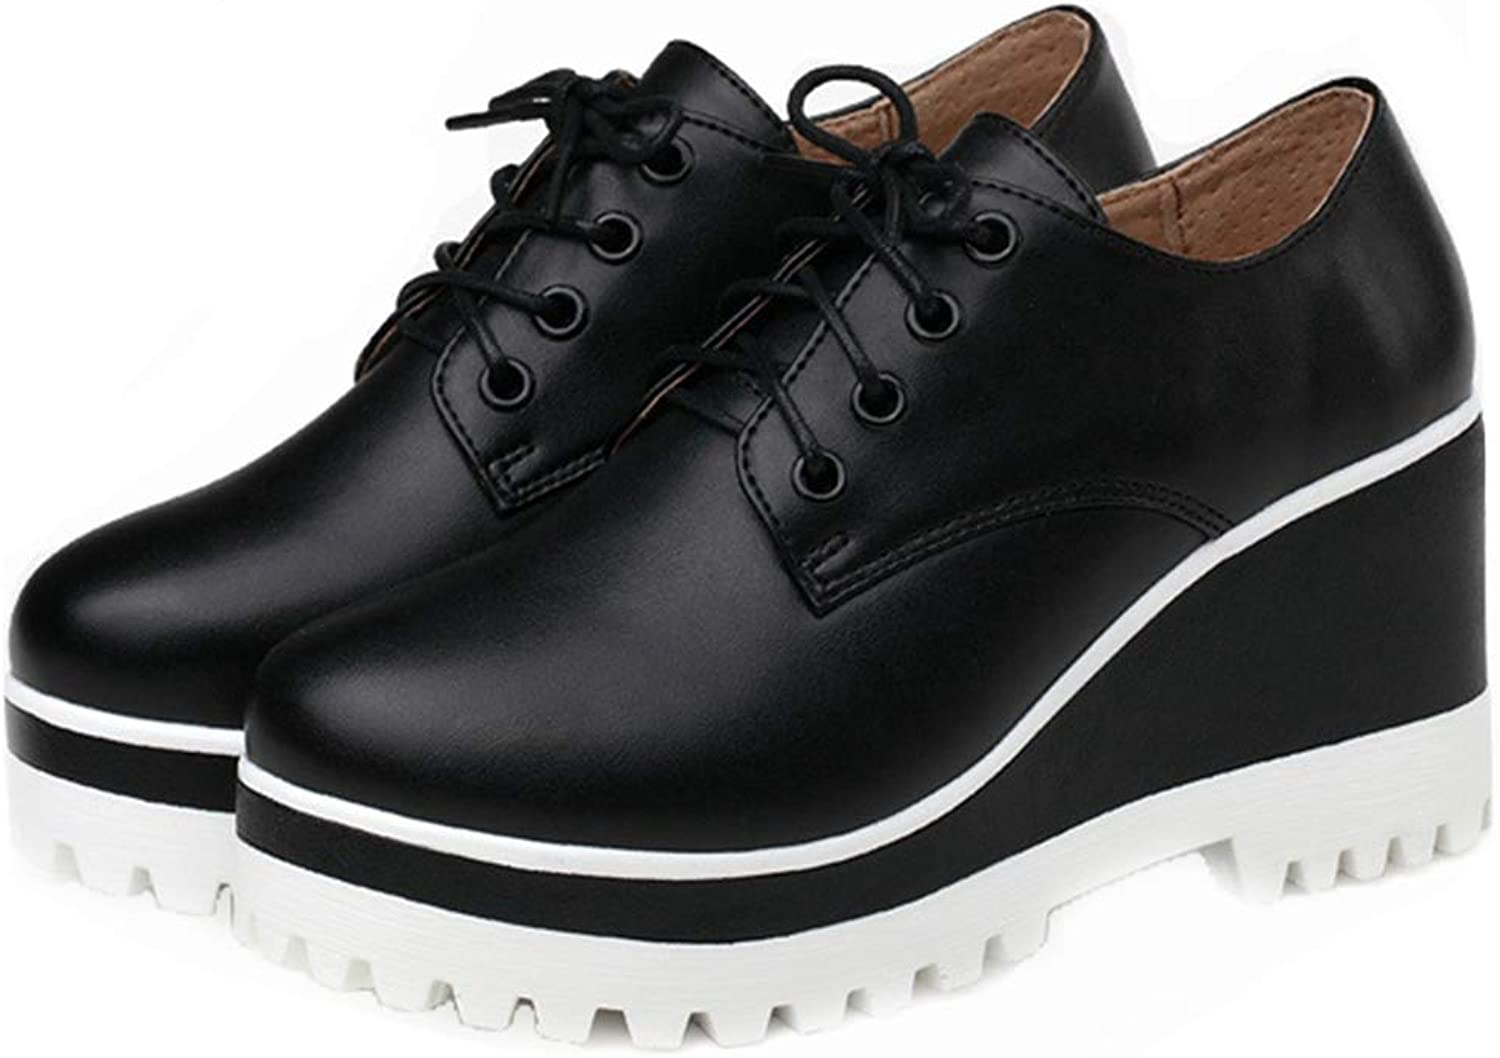 GIY Women's Wedge Platform Oxfords shoes Wingtip Lace Up Chunky High Heels Fashion Dress Oxford Sneakers